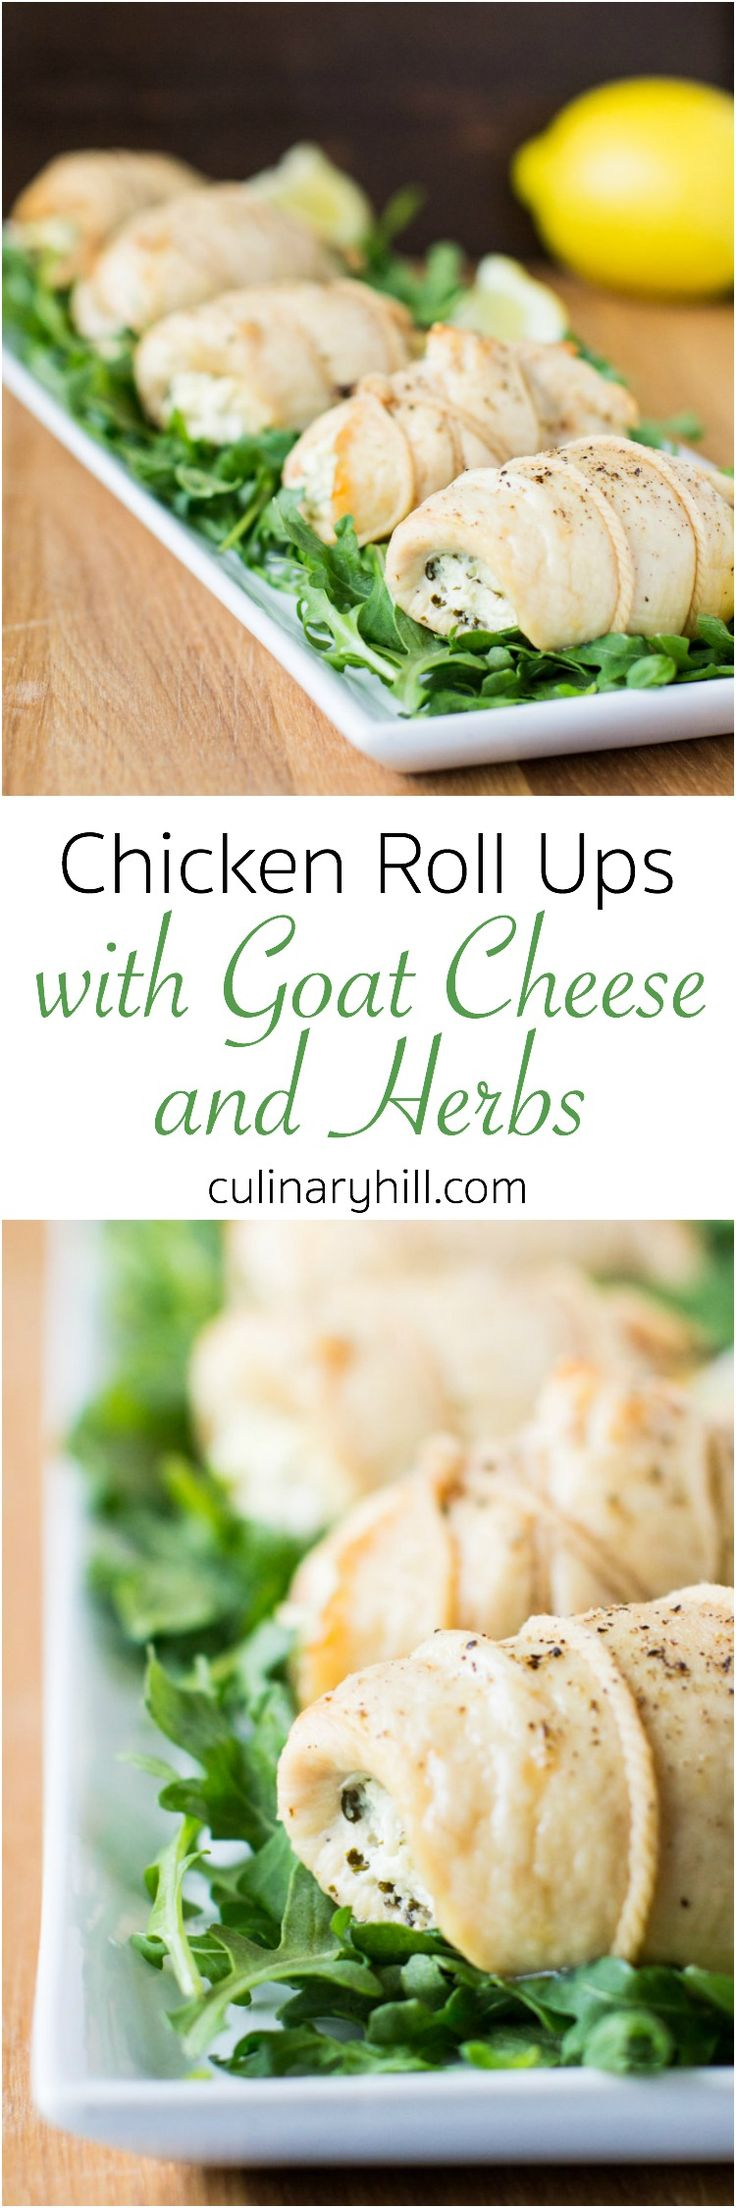 Chicken Roll Ups with Goat Cheese and Herbs are elegant enough for a ...